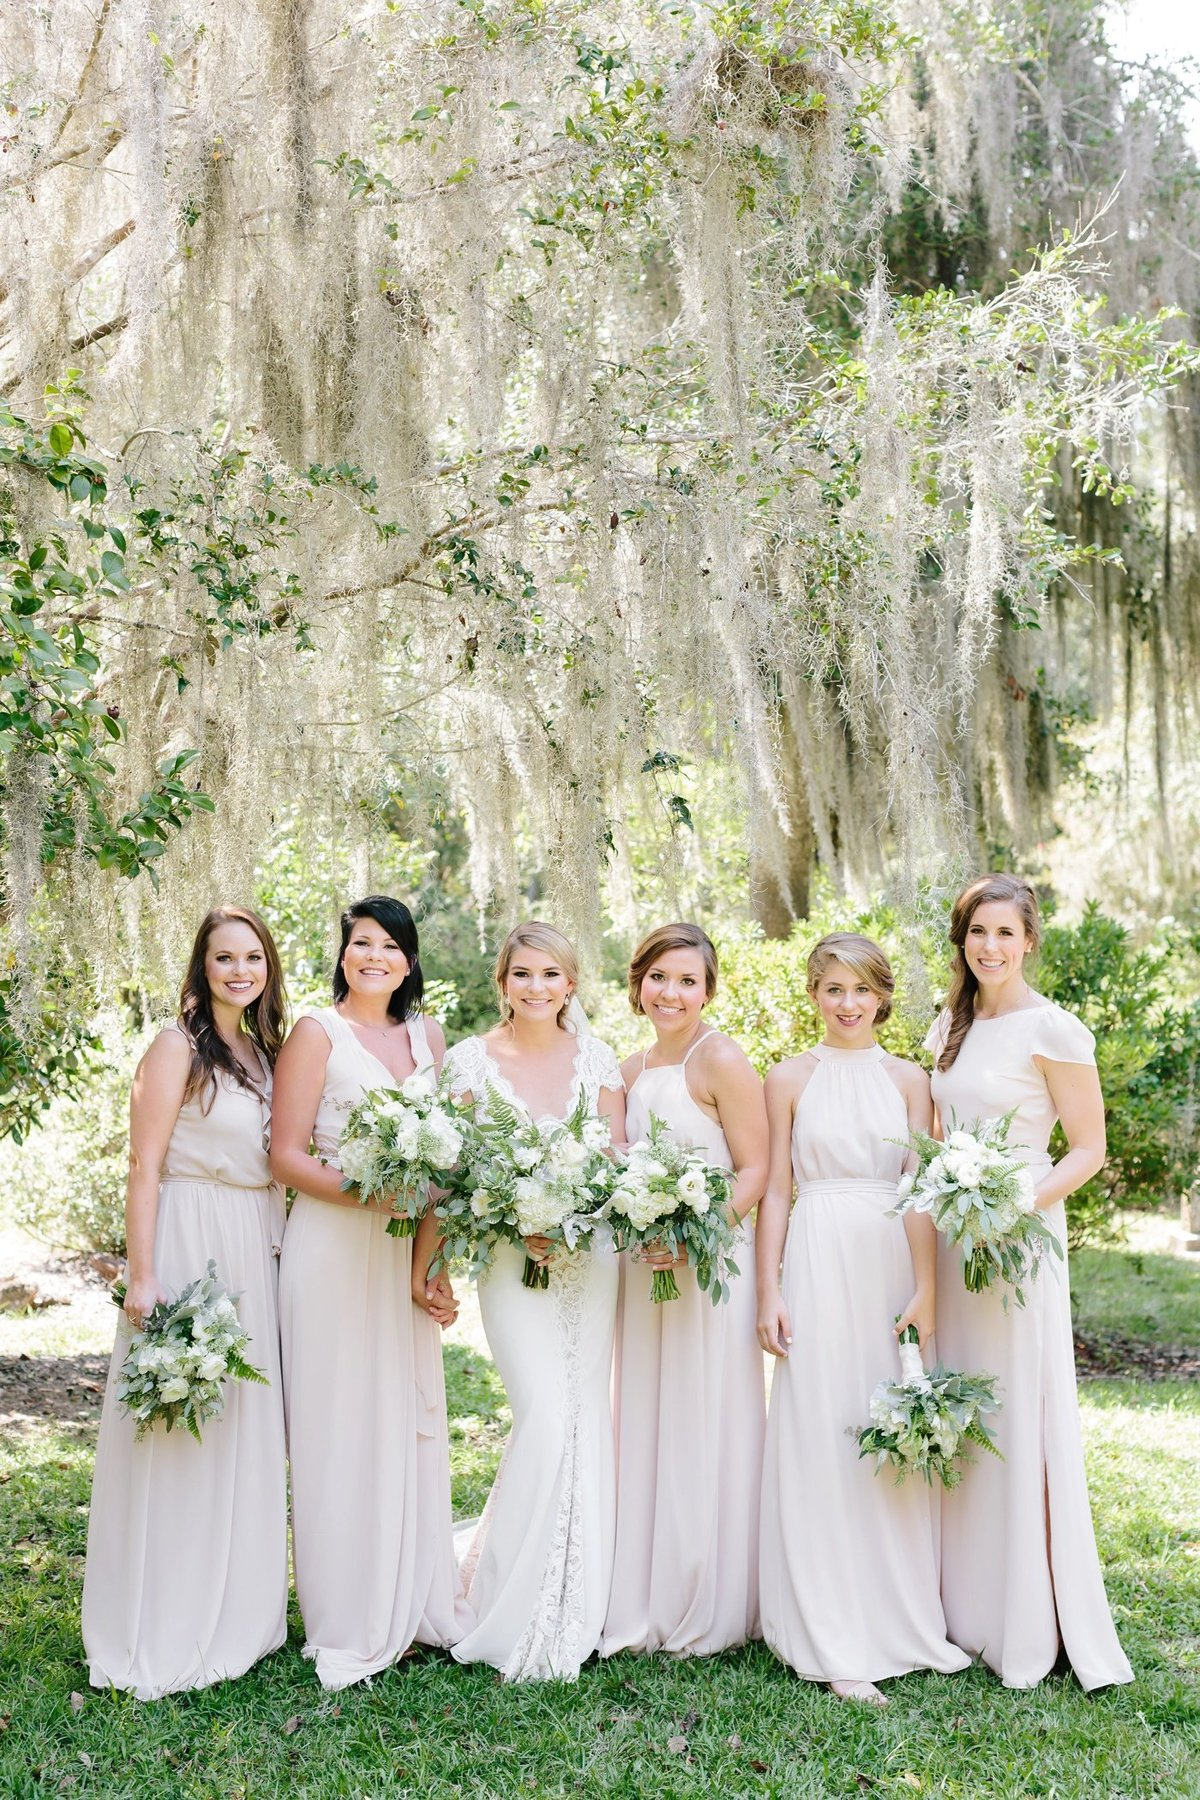 Georgia South Carolina Destination Wedding Photographer_0101